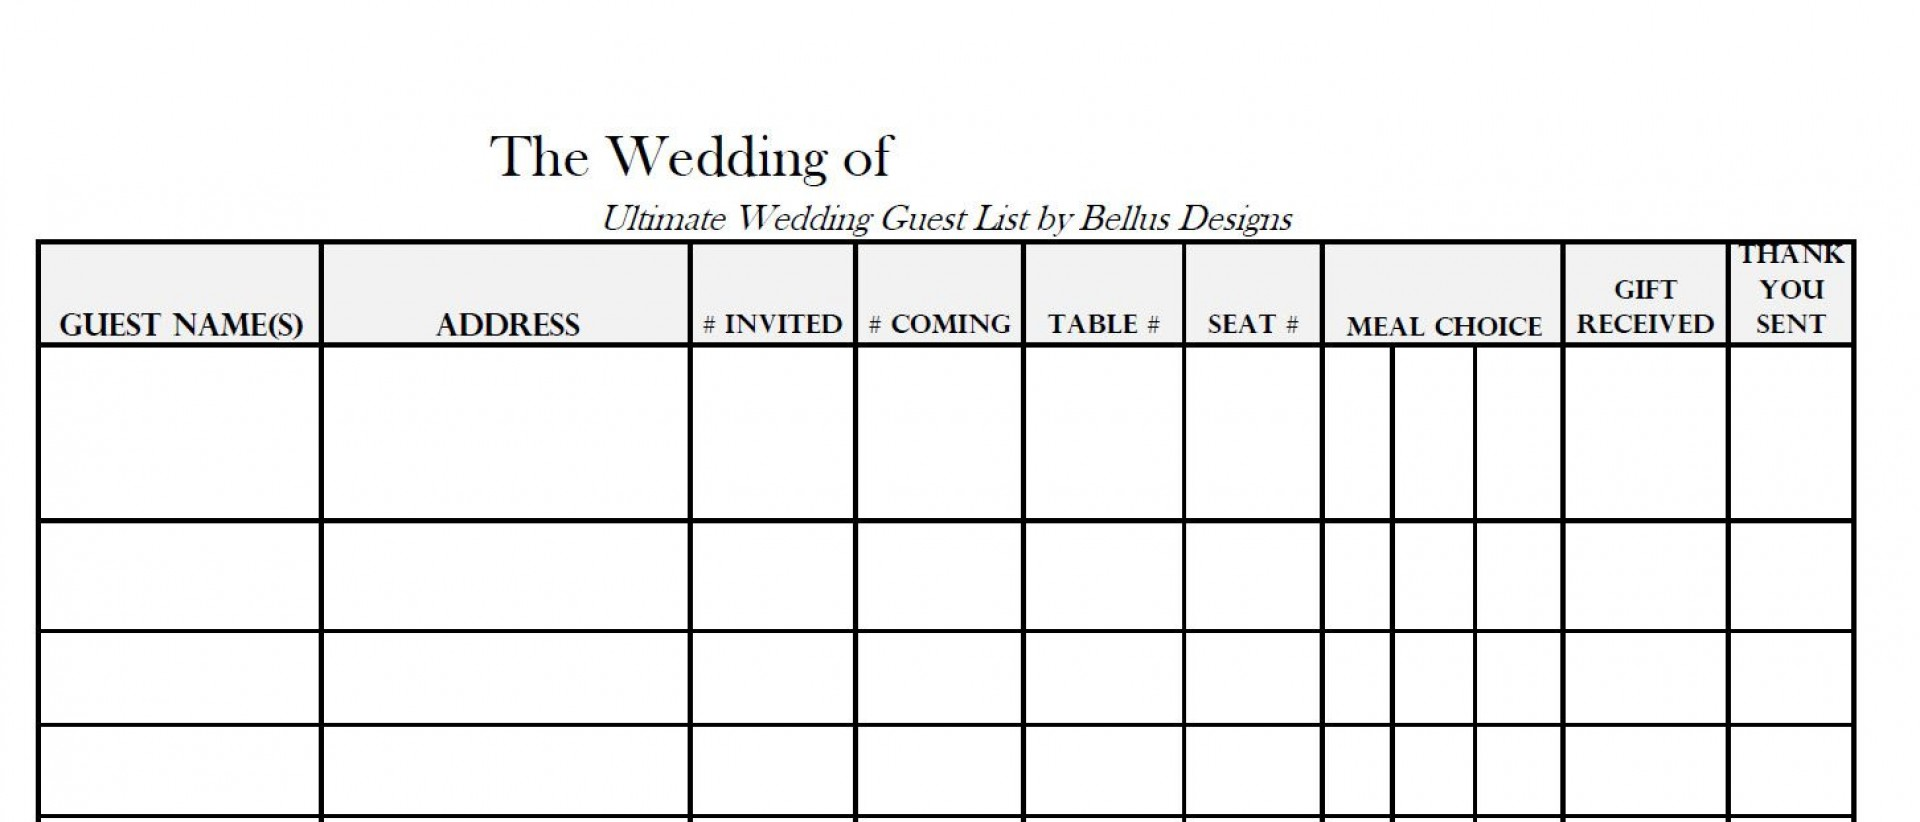 005 Imposing Wedding Guest List Template Excel Download Photo 1920